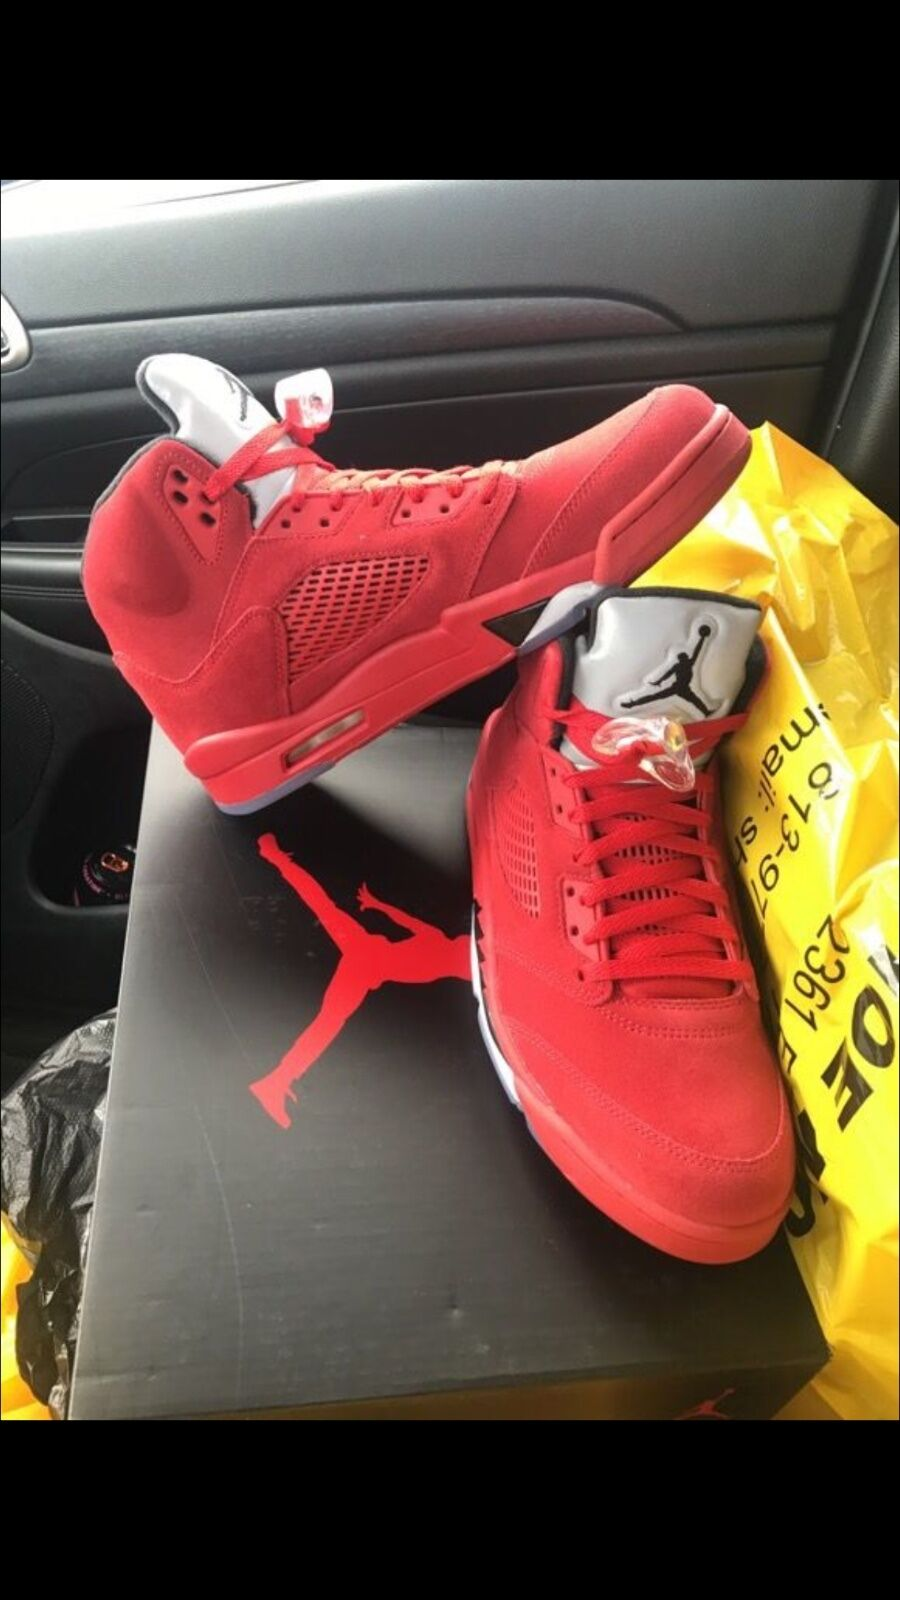 Red suede jordan 5 brand new still in box sz 11 and 8.5